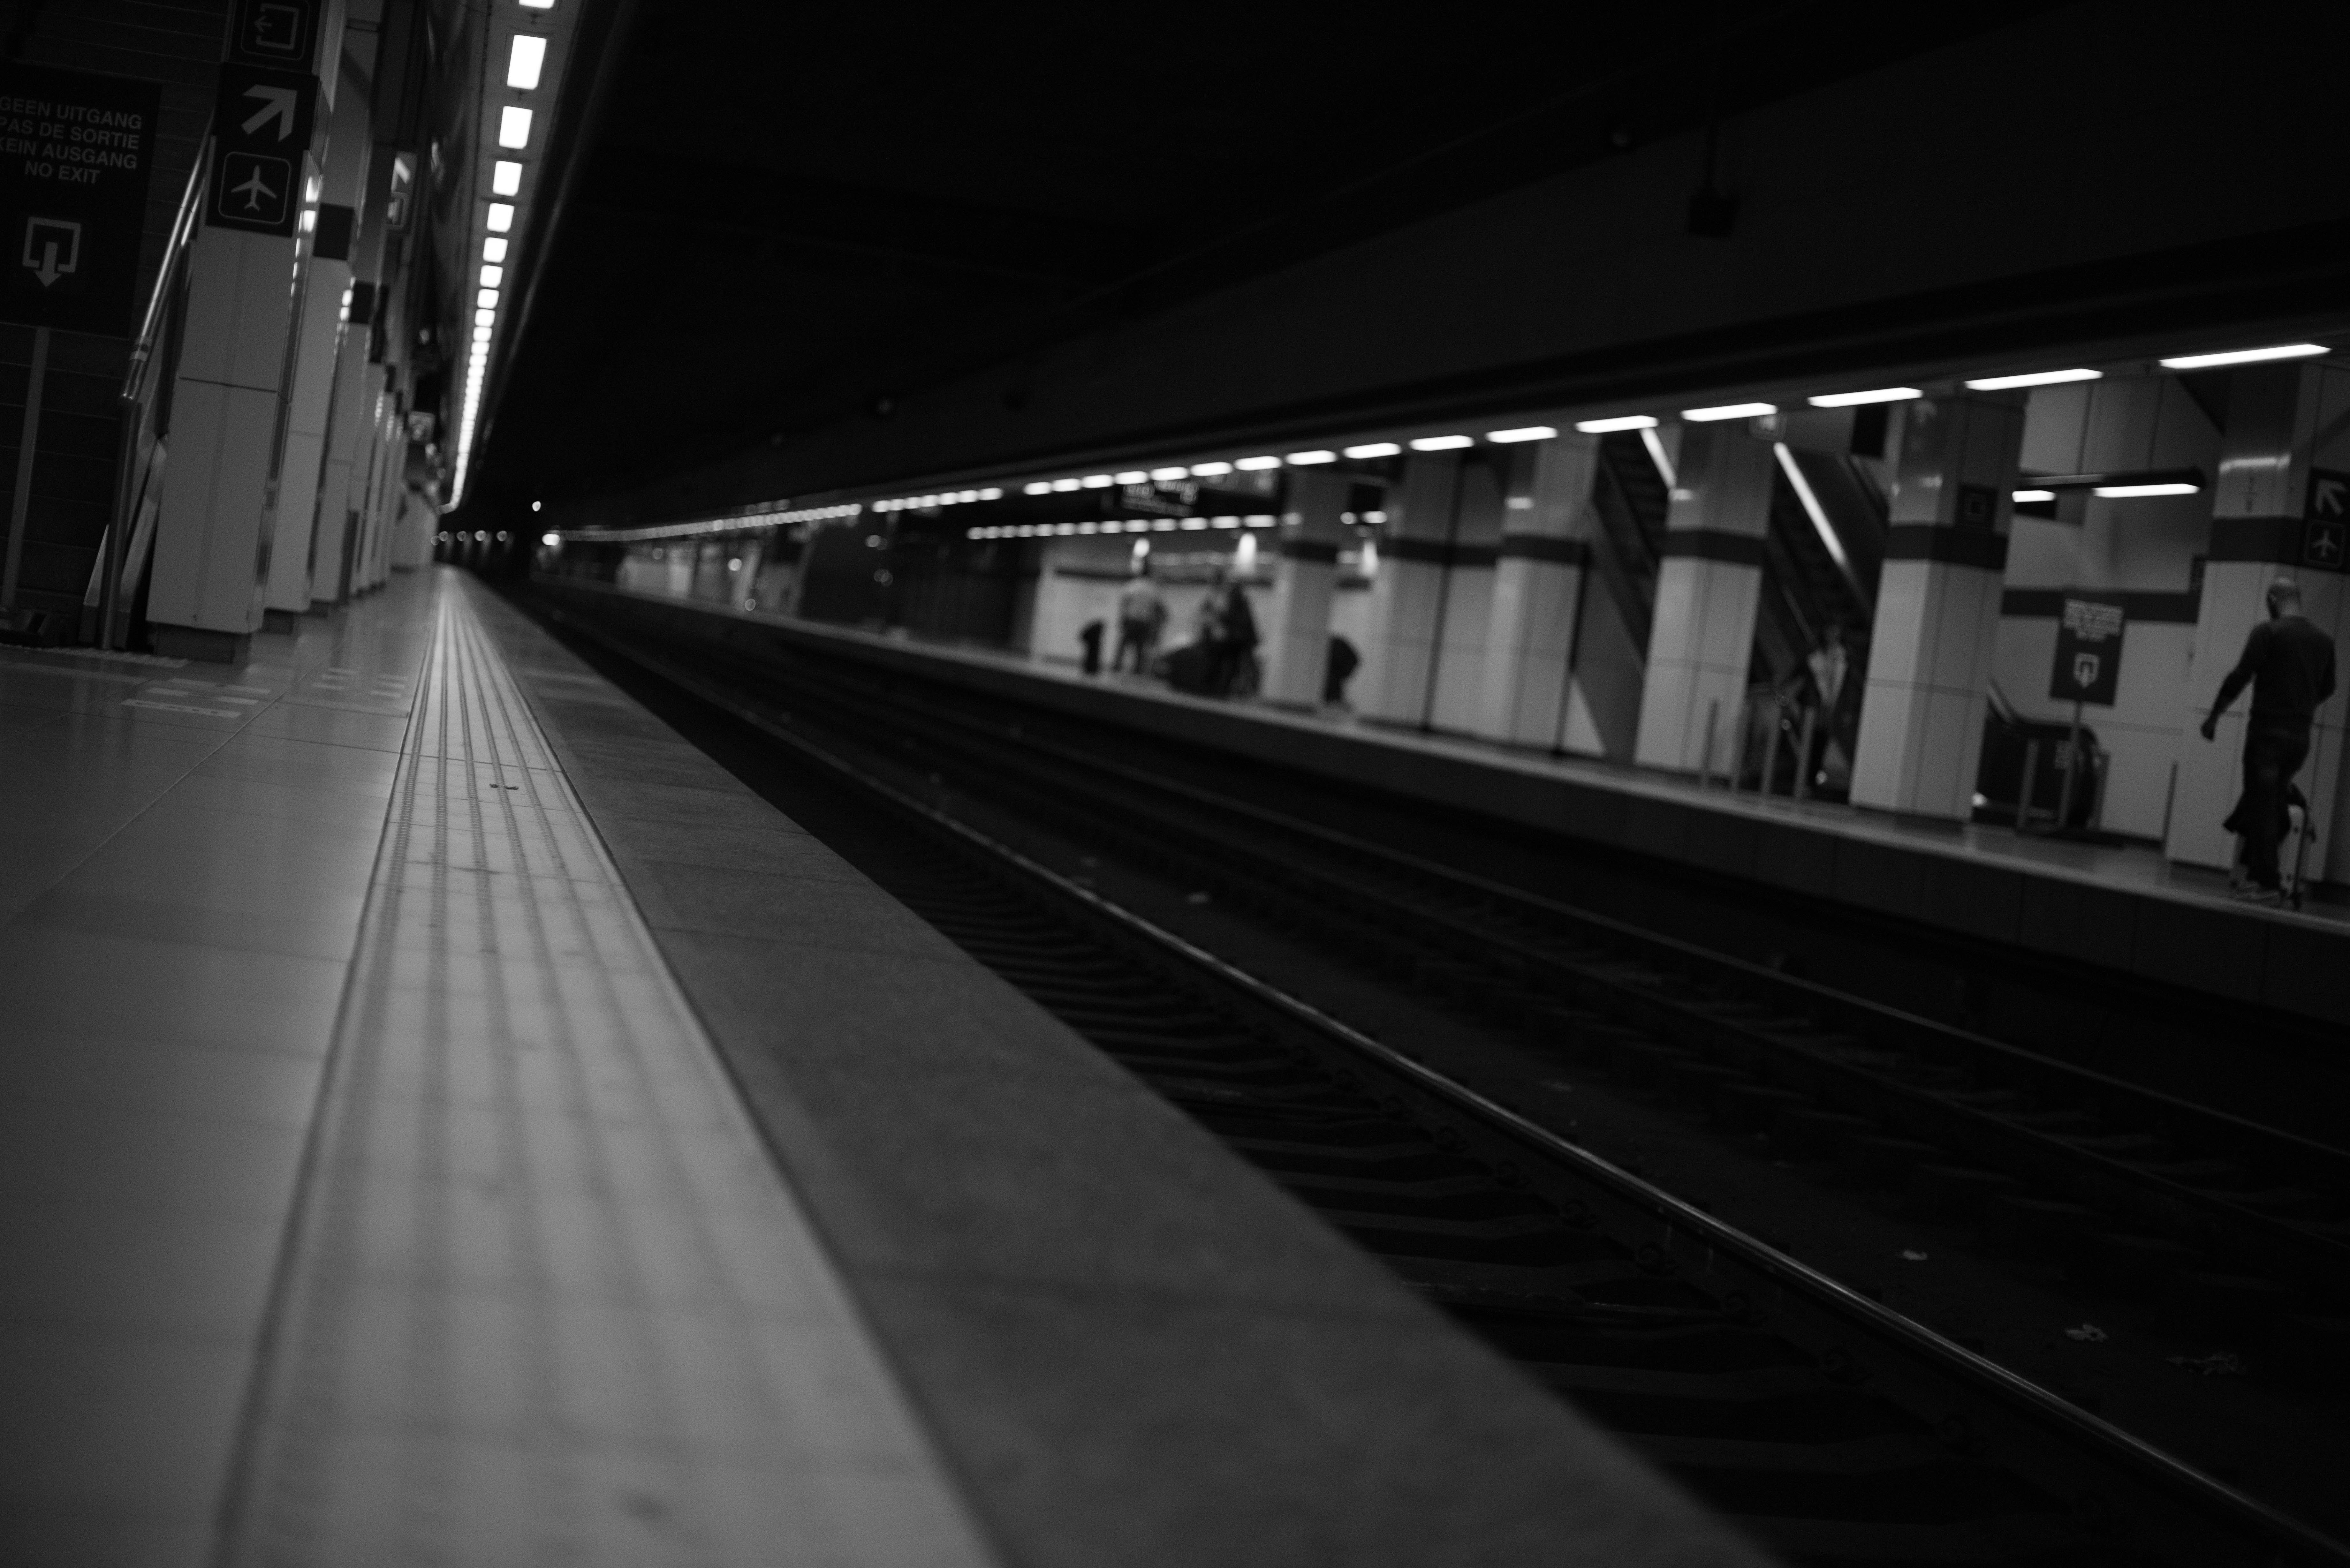 People Walking on Train Station Greyscale Photography, Black-and-white, Blur, Commuter, Light, HQ Photo